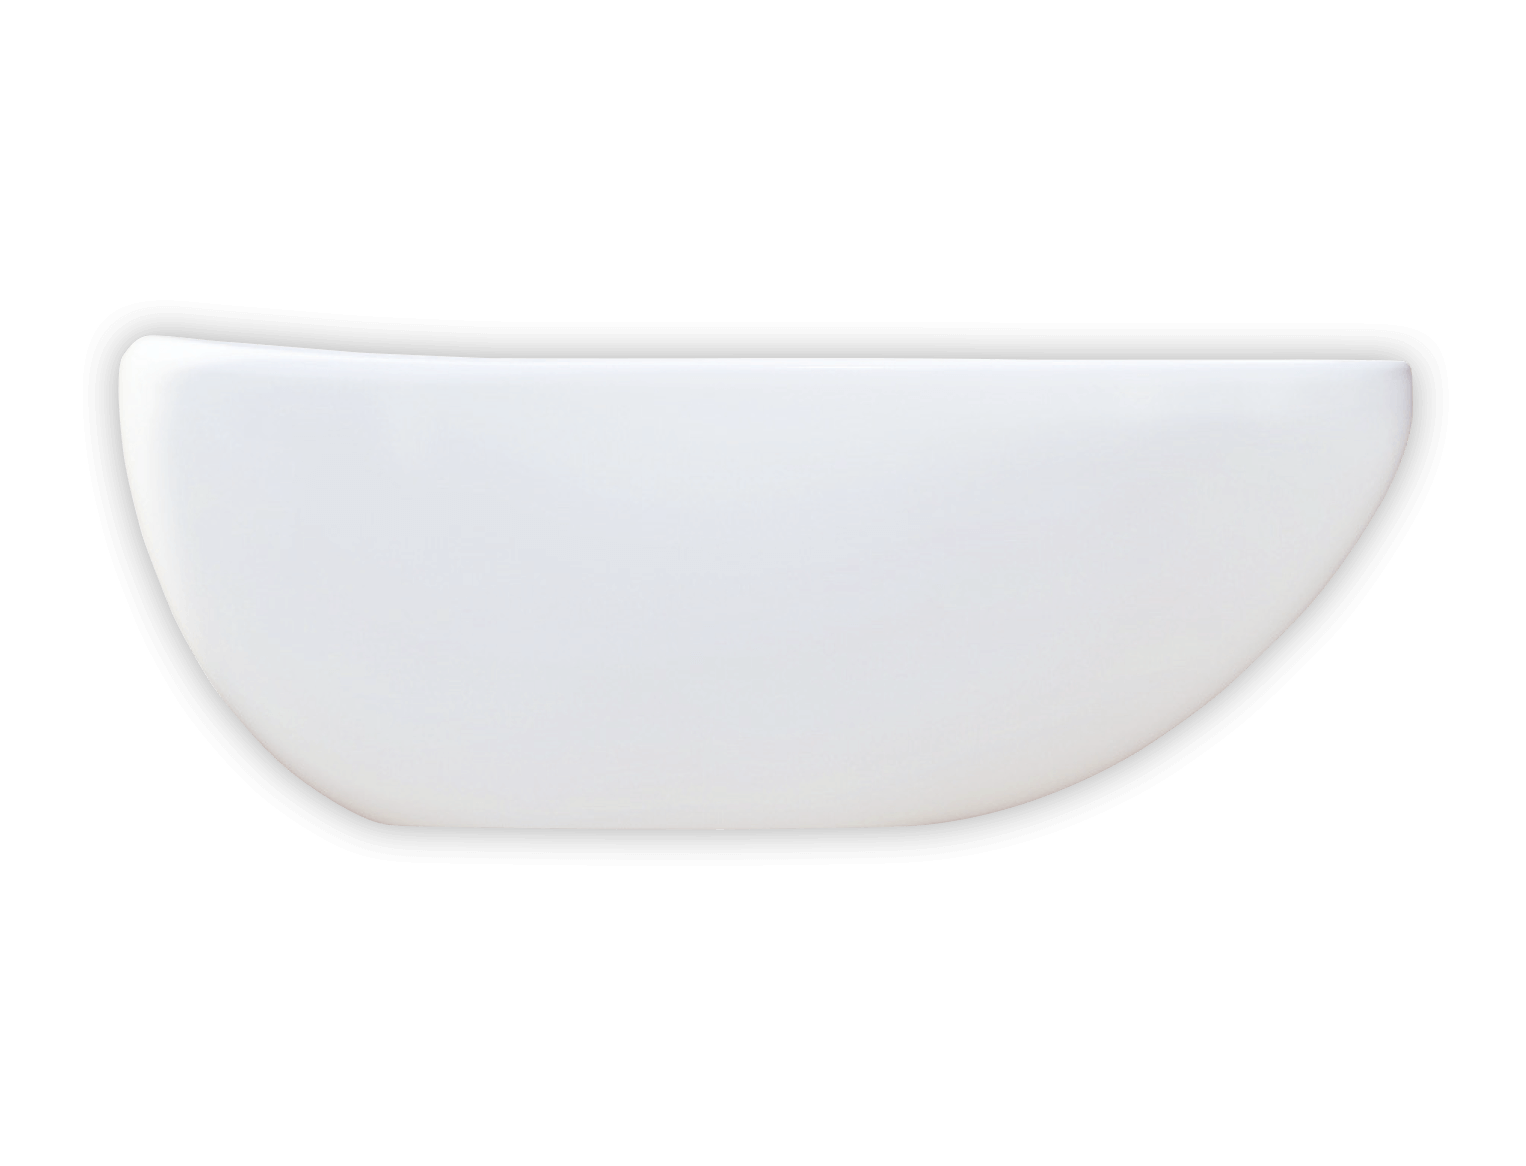 Bainultra Essencia Oval 7236 freestanding air jet bathtub for your modern bathroom